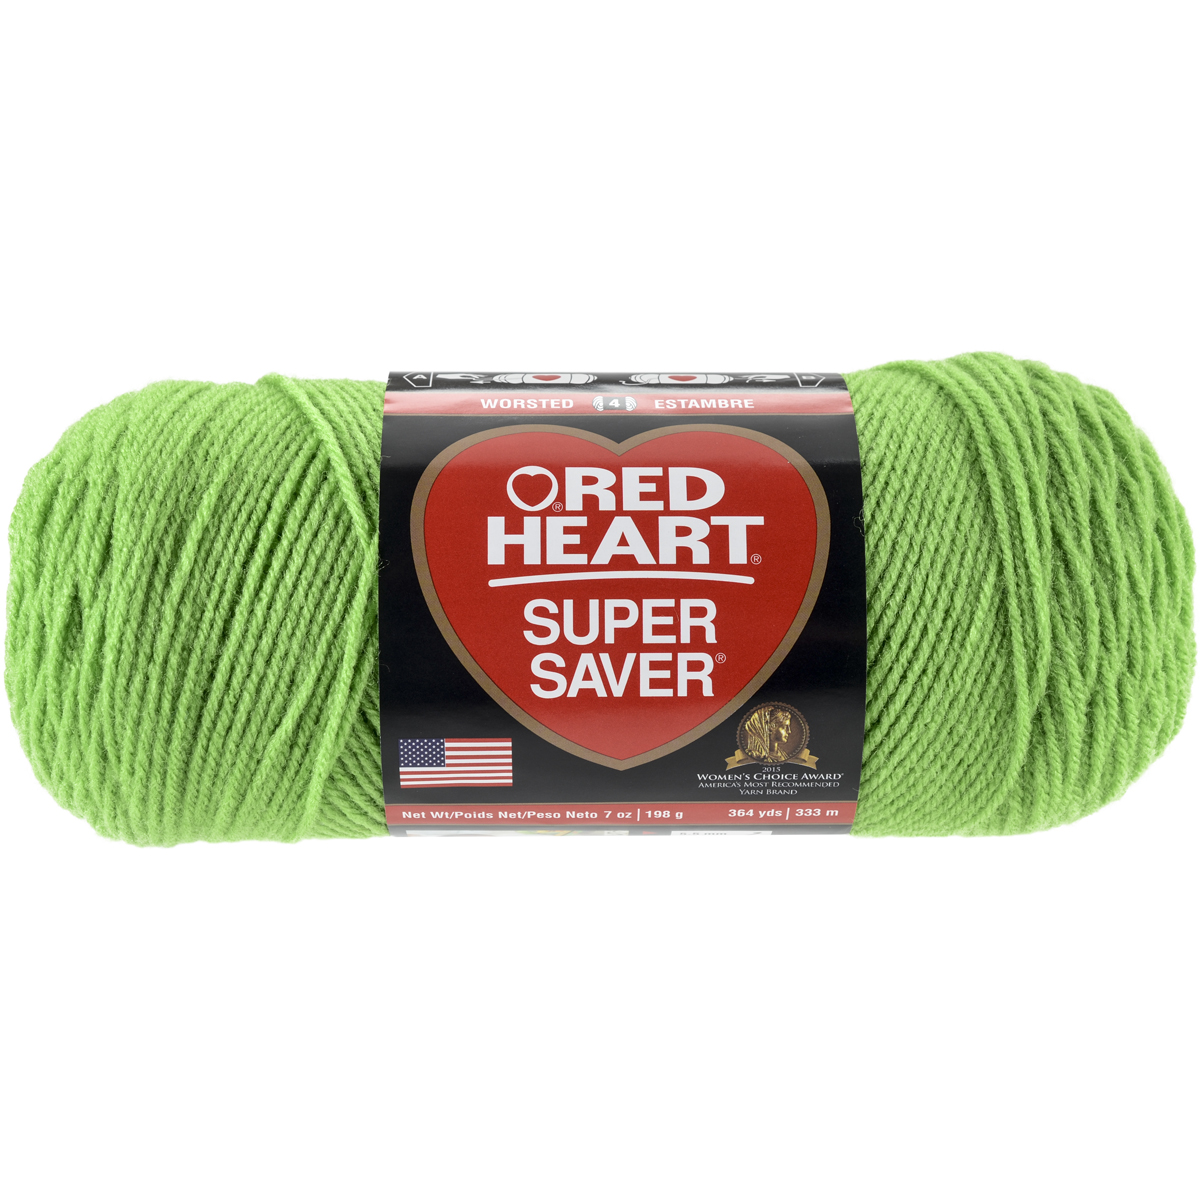 Red Heart Super Saver Jumbo Yarn. Super Saver has been America's best selling yarn for over 70 years. The great wash performance and no dyelot solids makes this large skein the Go-To yarn for wear-ables; home accessories; and more.